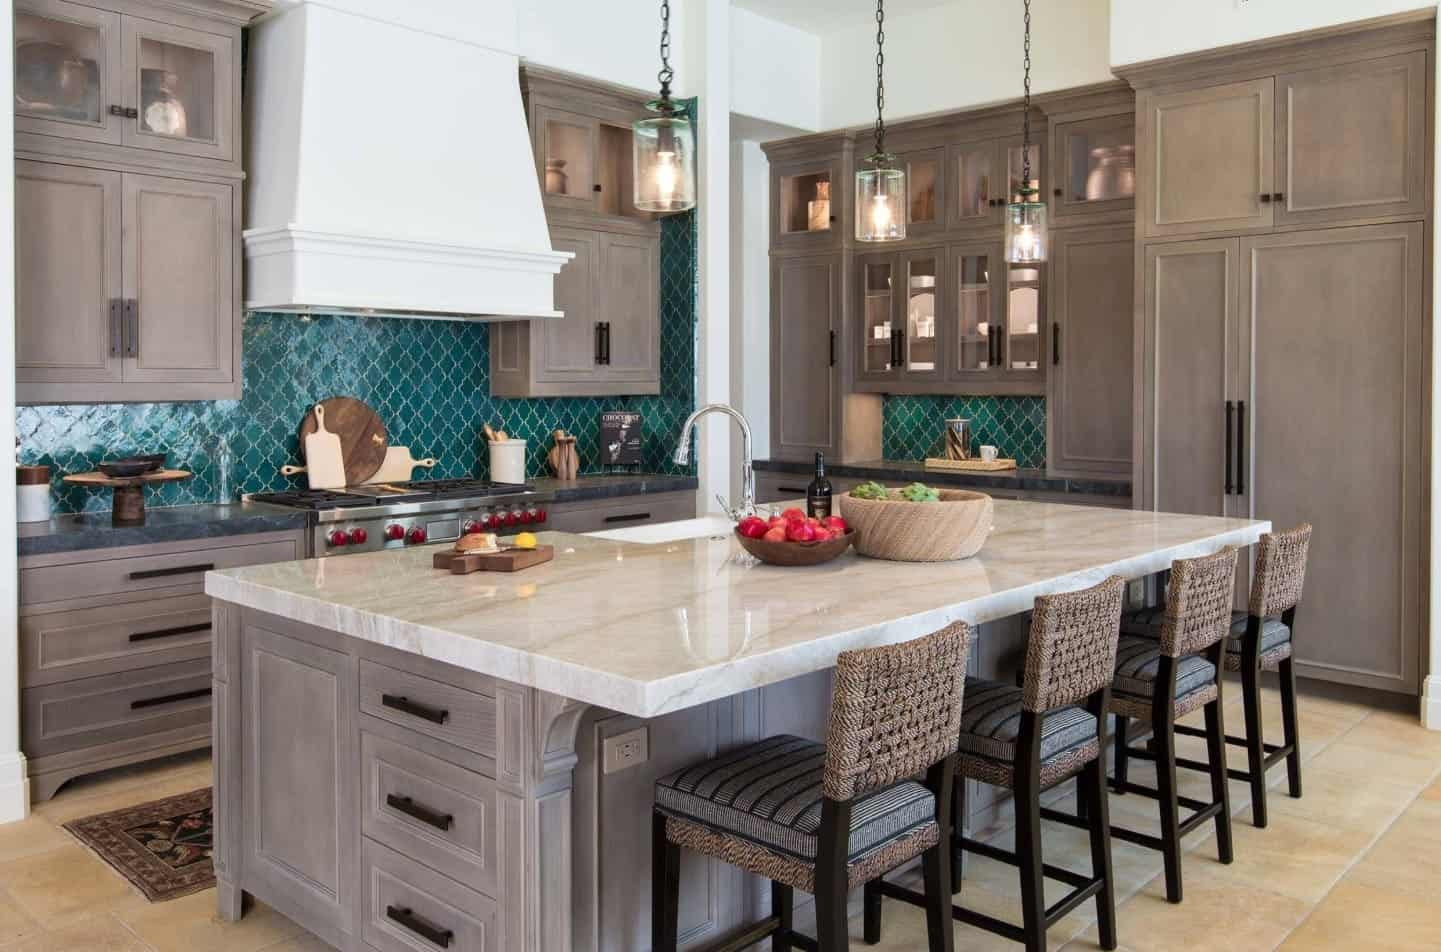 The bright green tiles of the backsplash stands out in this Spanish-style kitchen filled with gray shaker cabinets and drawers with matching black handles matching the wooden legs of the rustic stools with woven wicker backs.